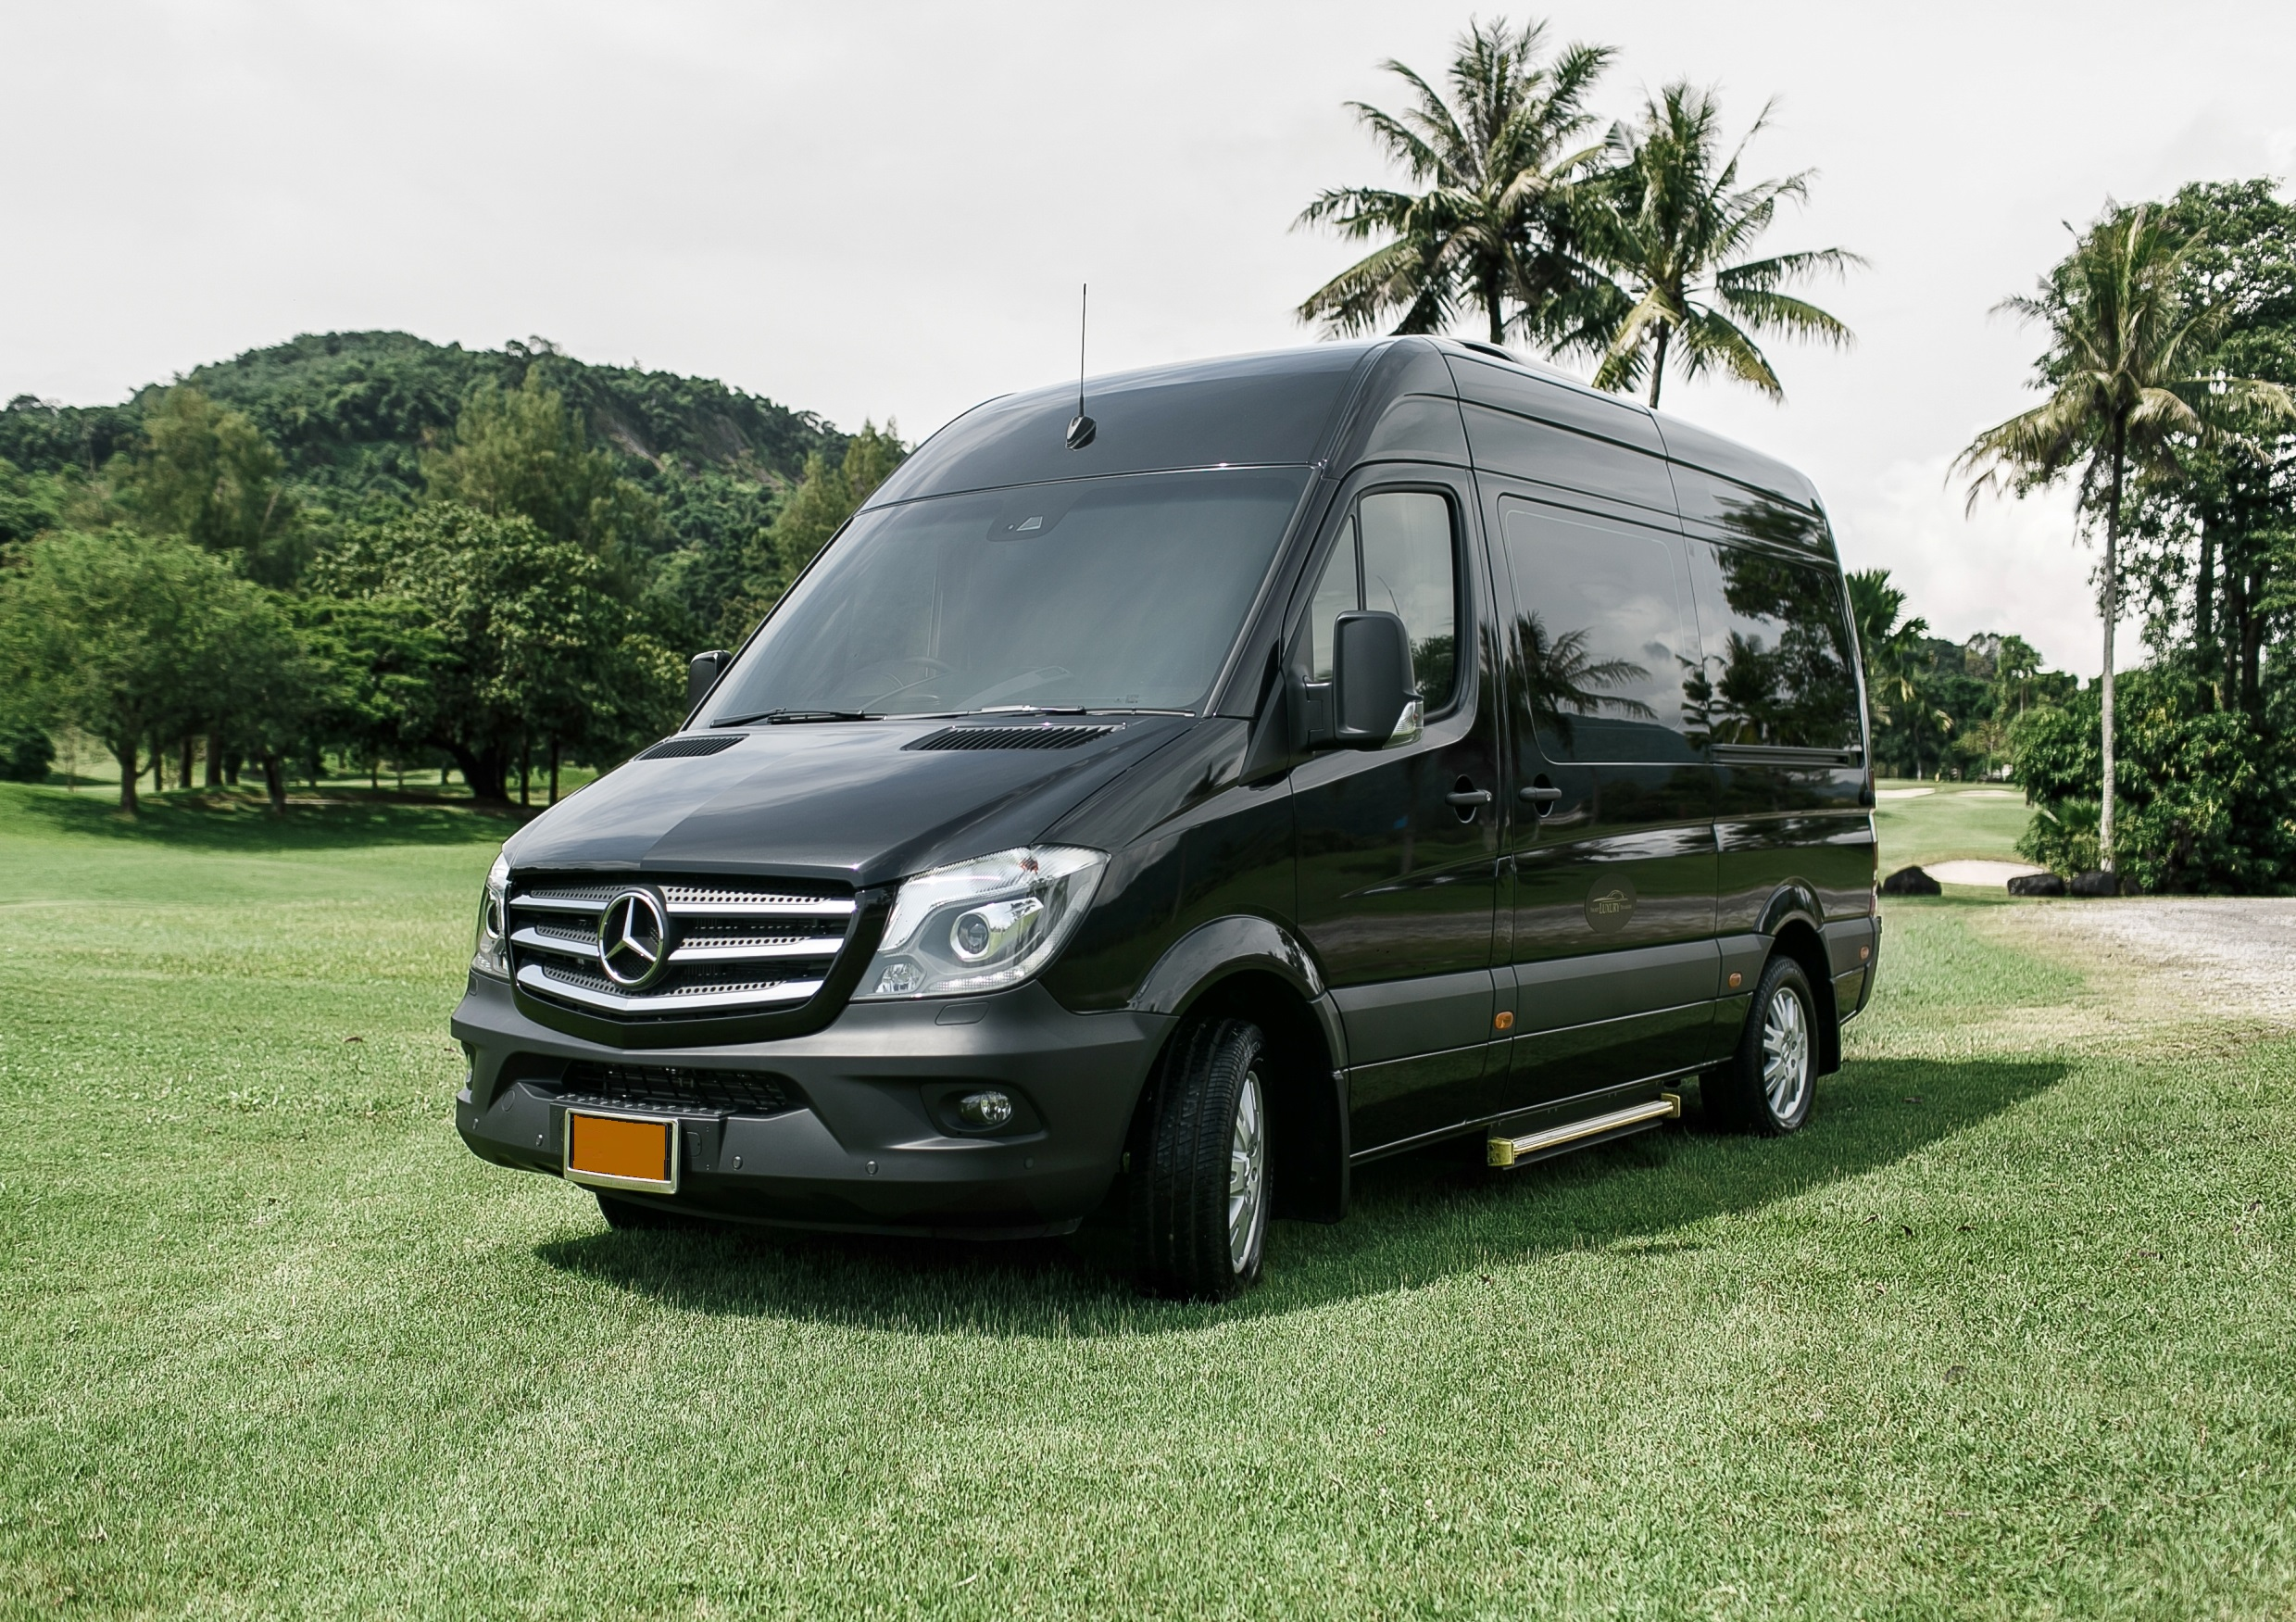 Phuket Luxury Transfers third photo.